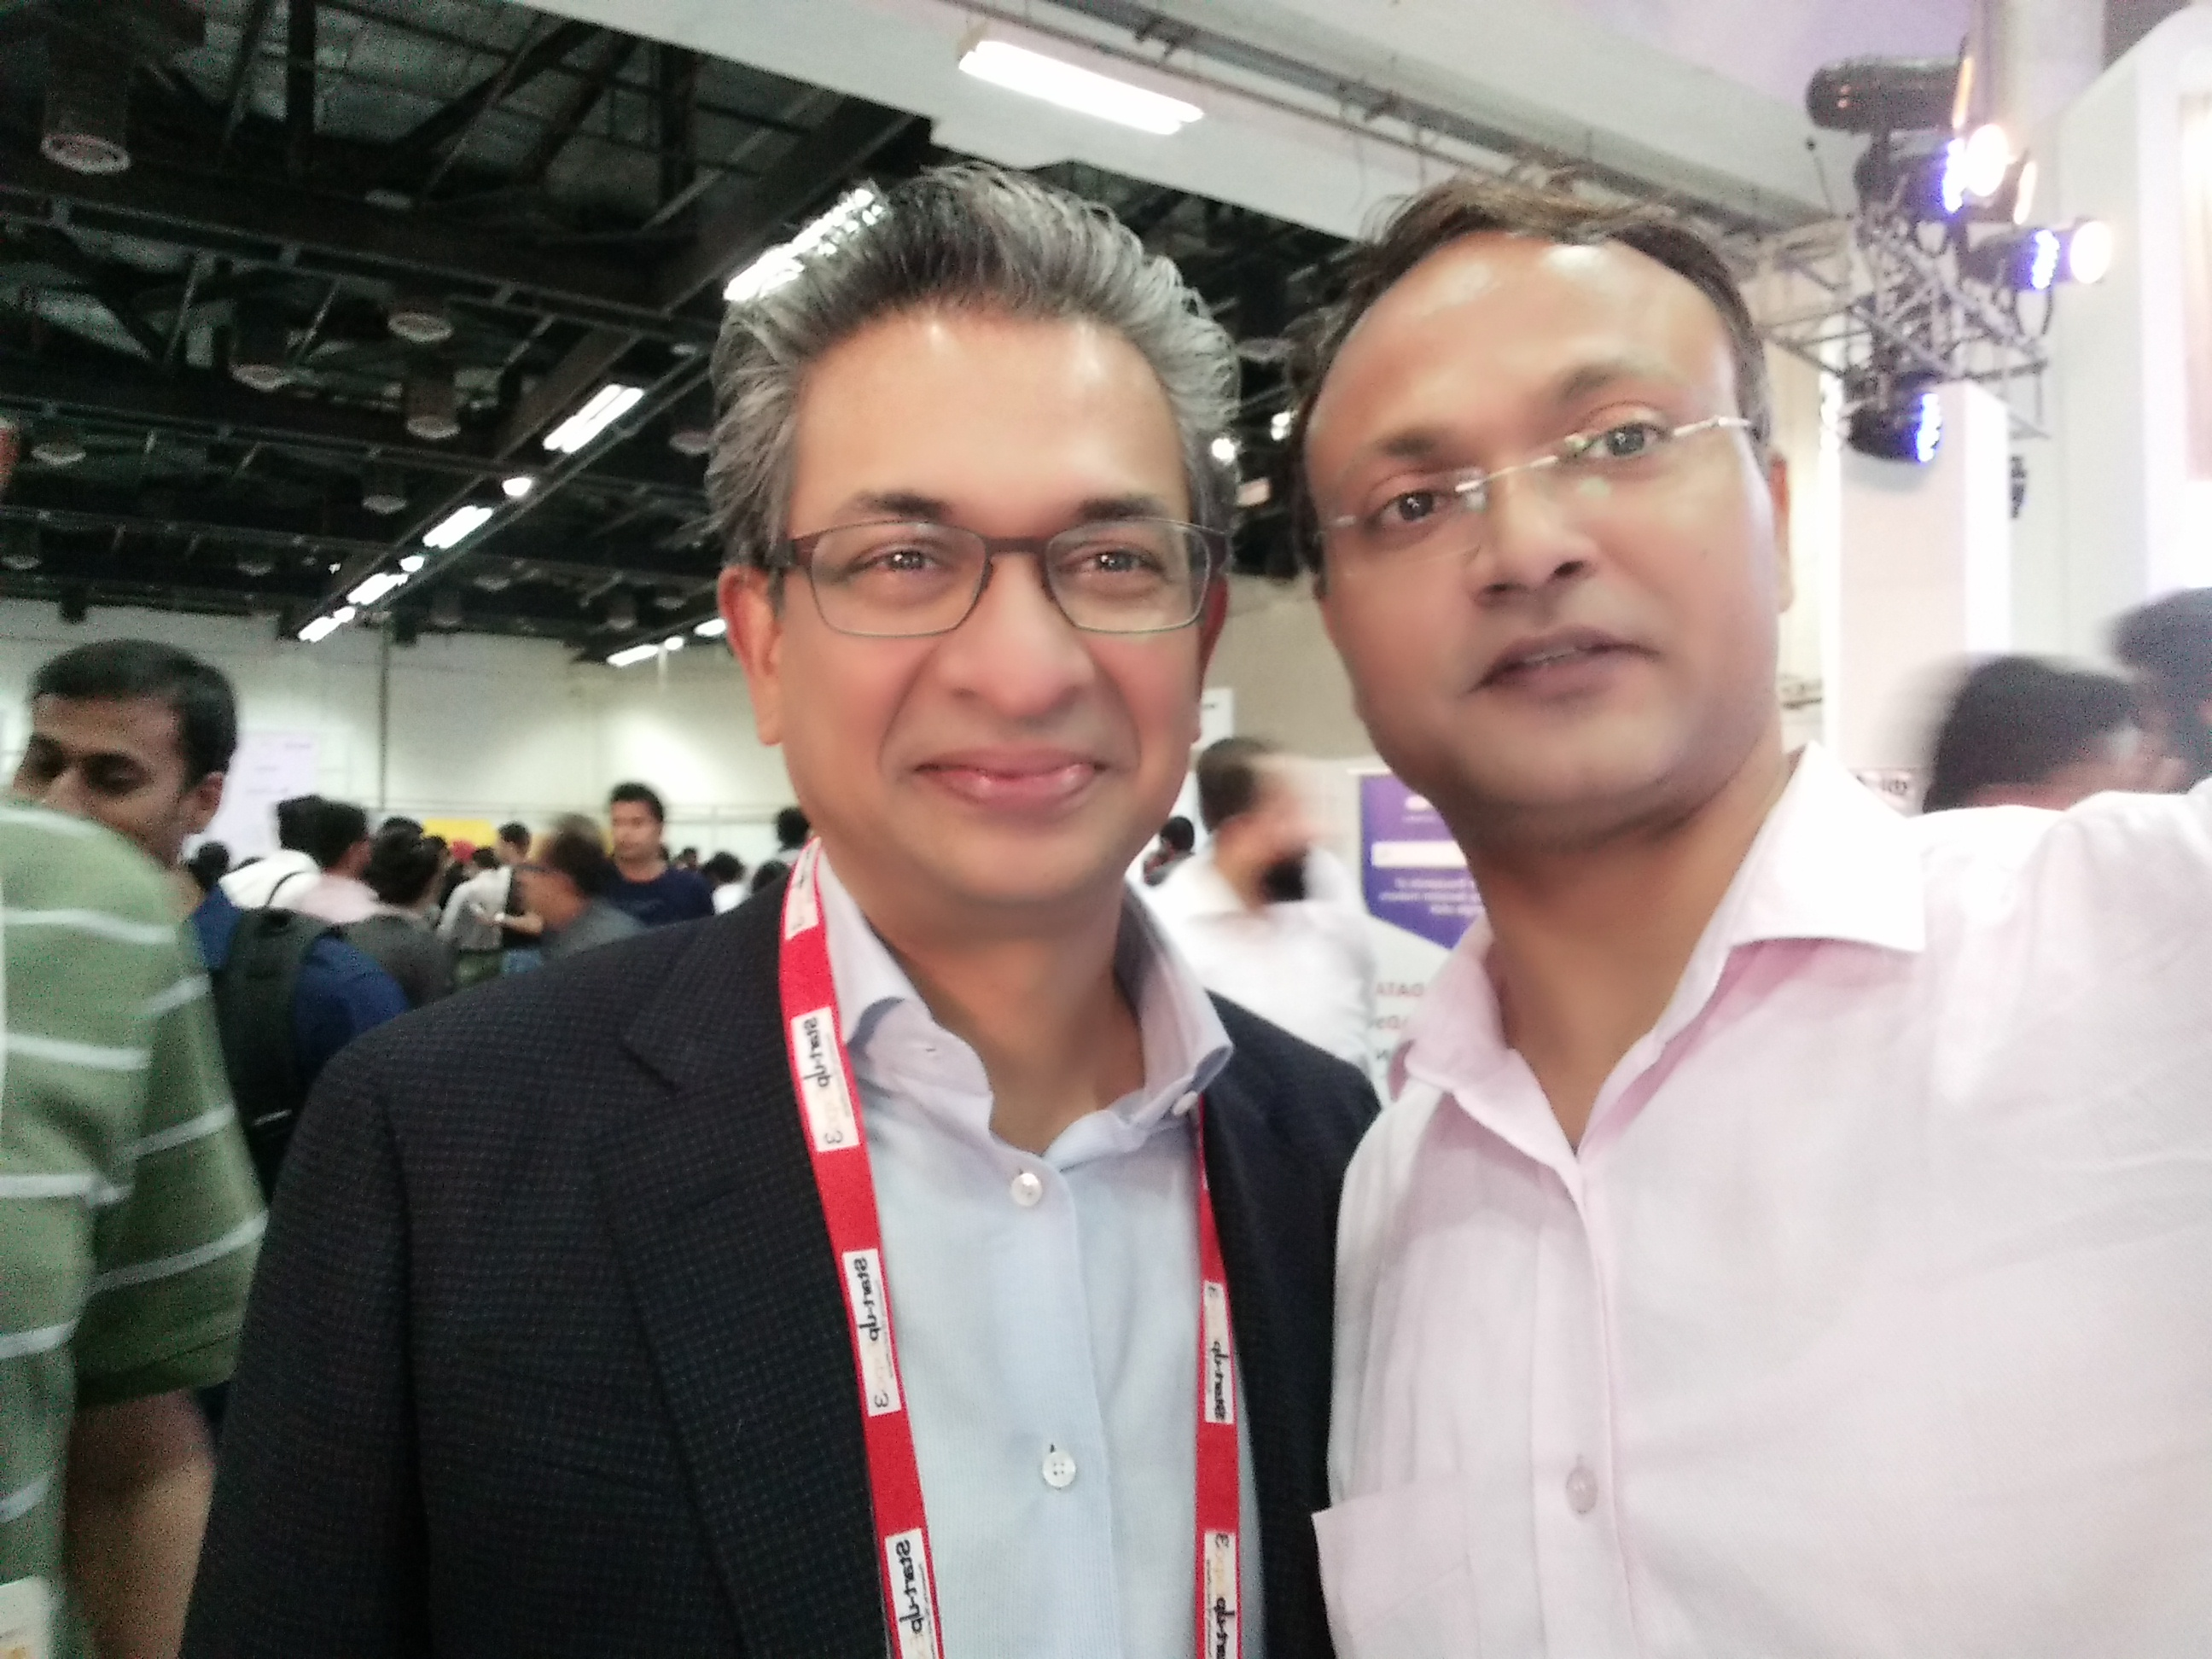 Sanjeev Kumar Atoall.com with Rajan Anandan Google.com for next Billion INTERNET Users